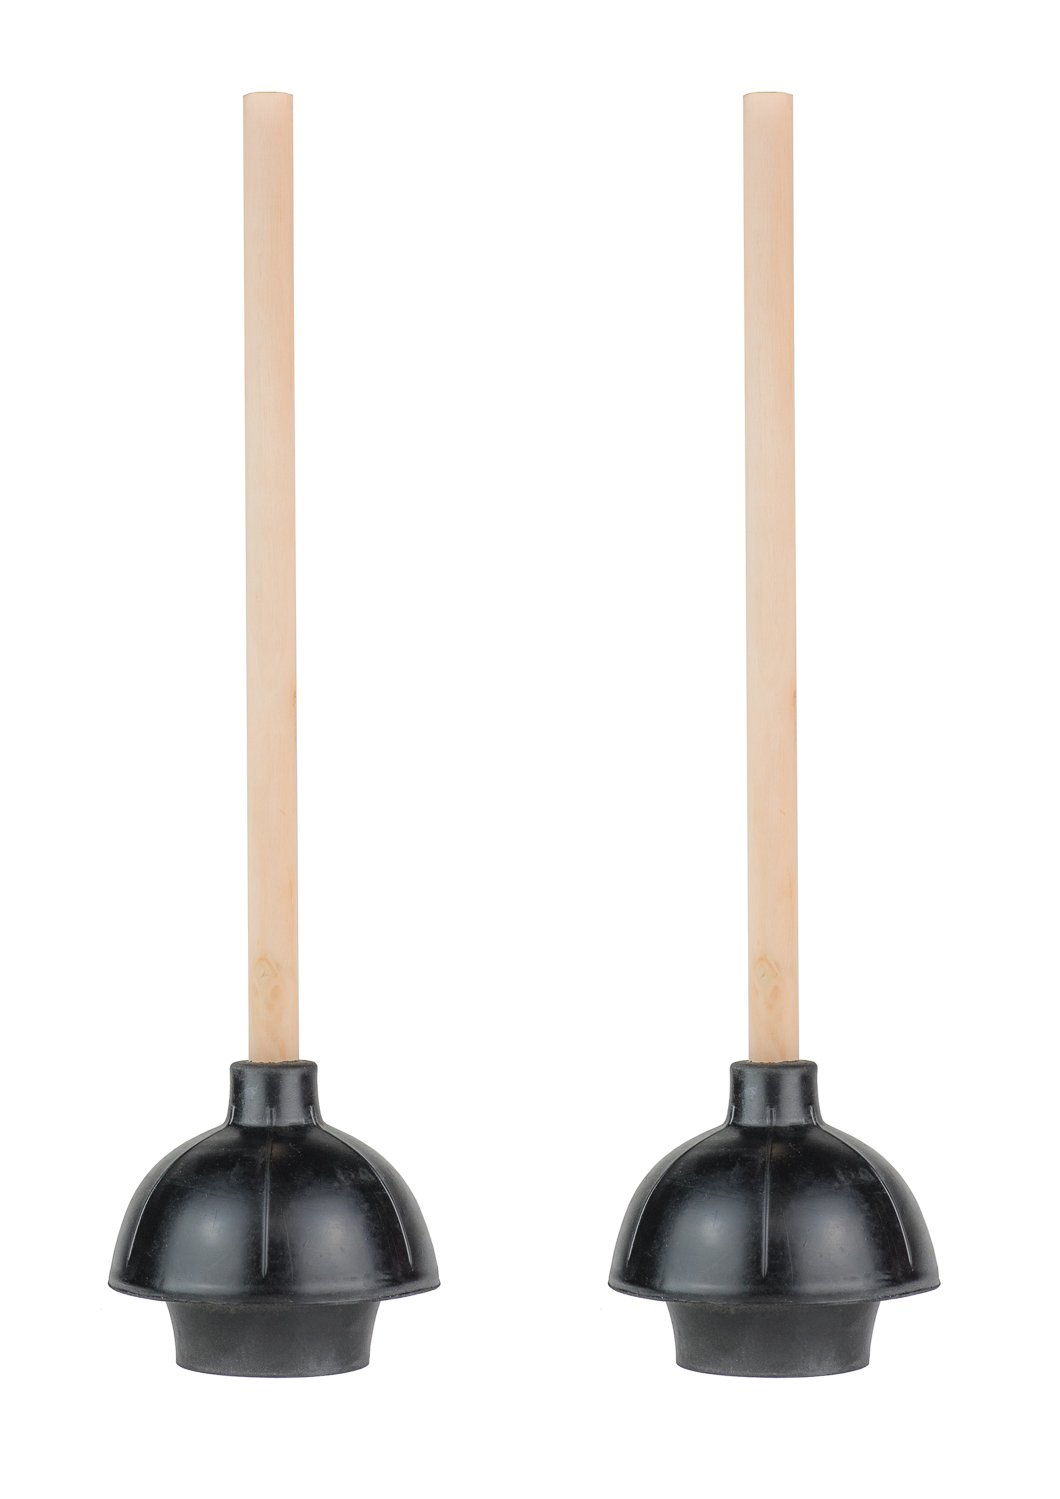 SteadMax Rubber Toilet Plunger, Double Thrust Force